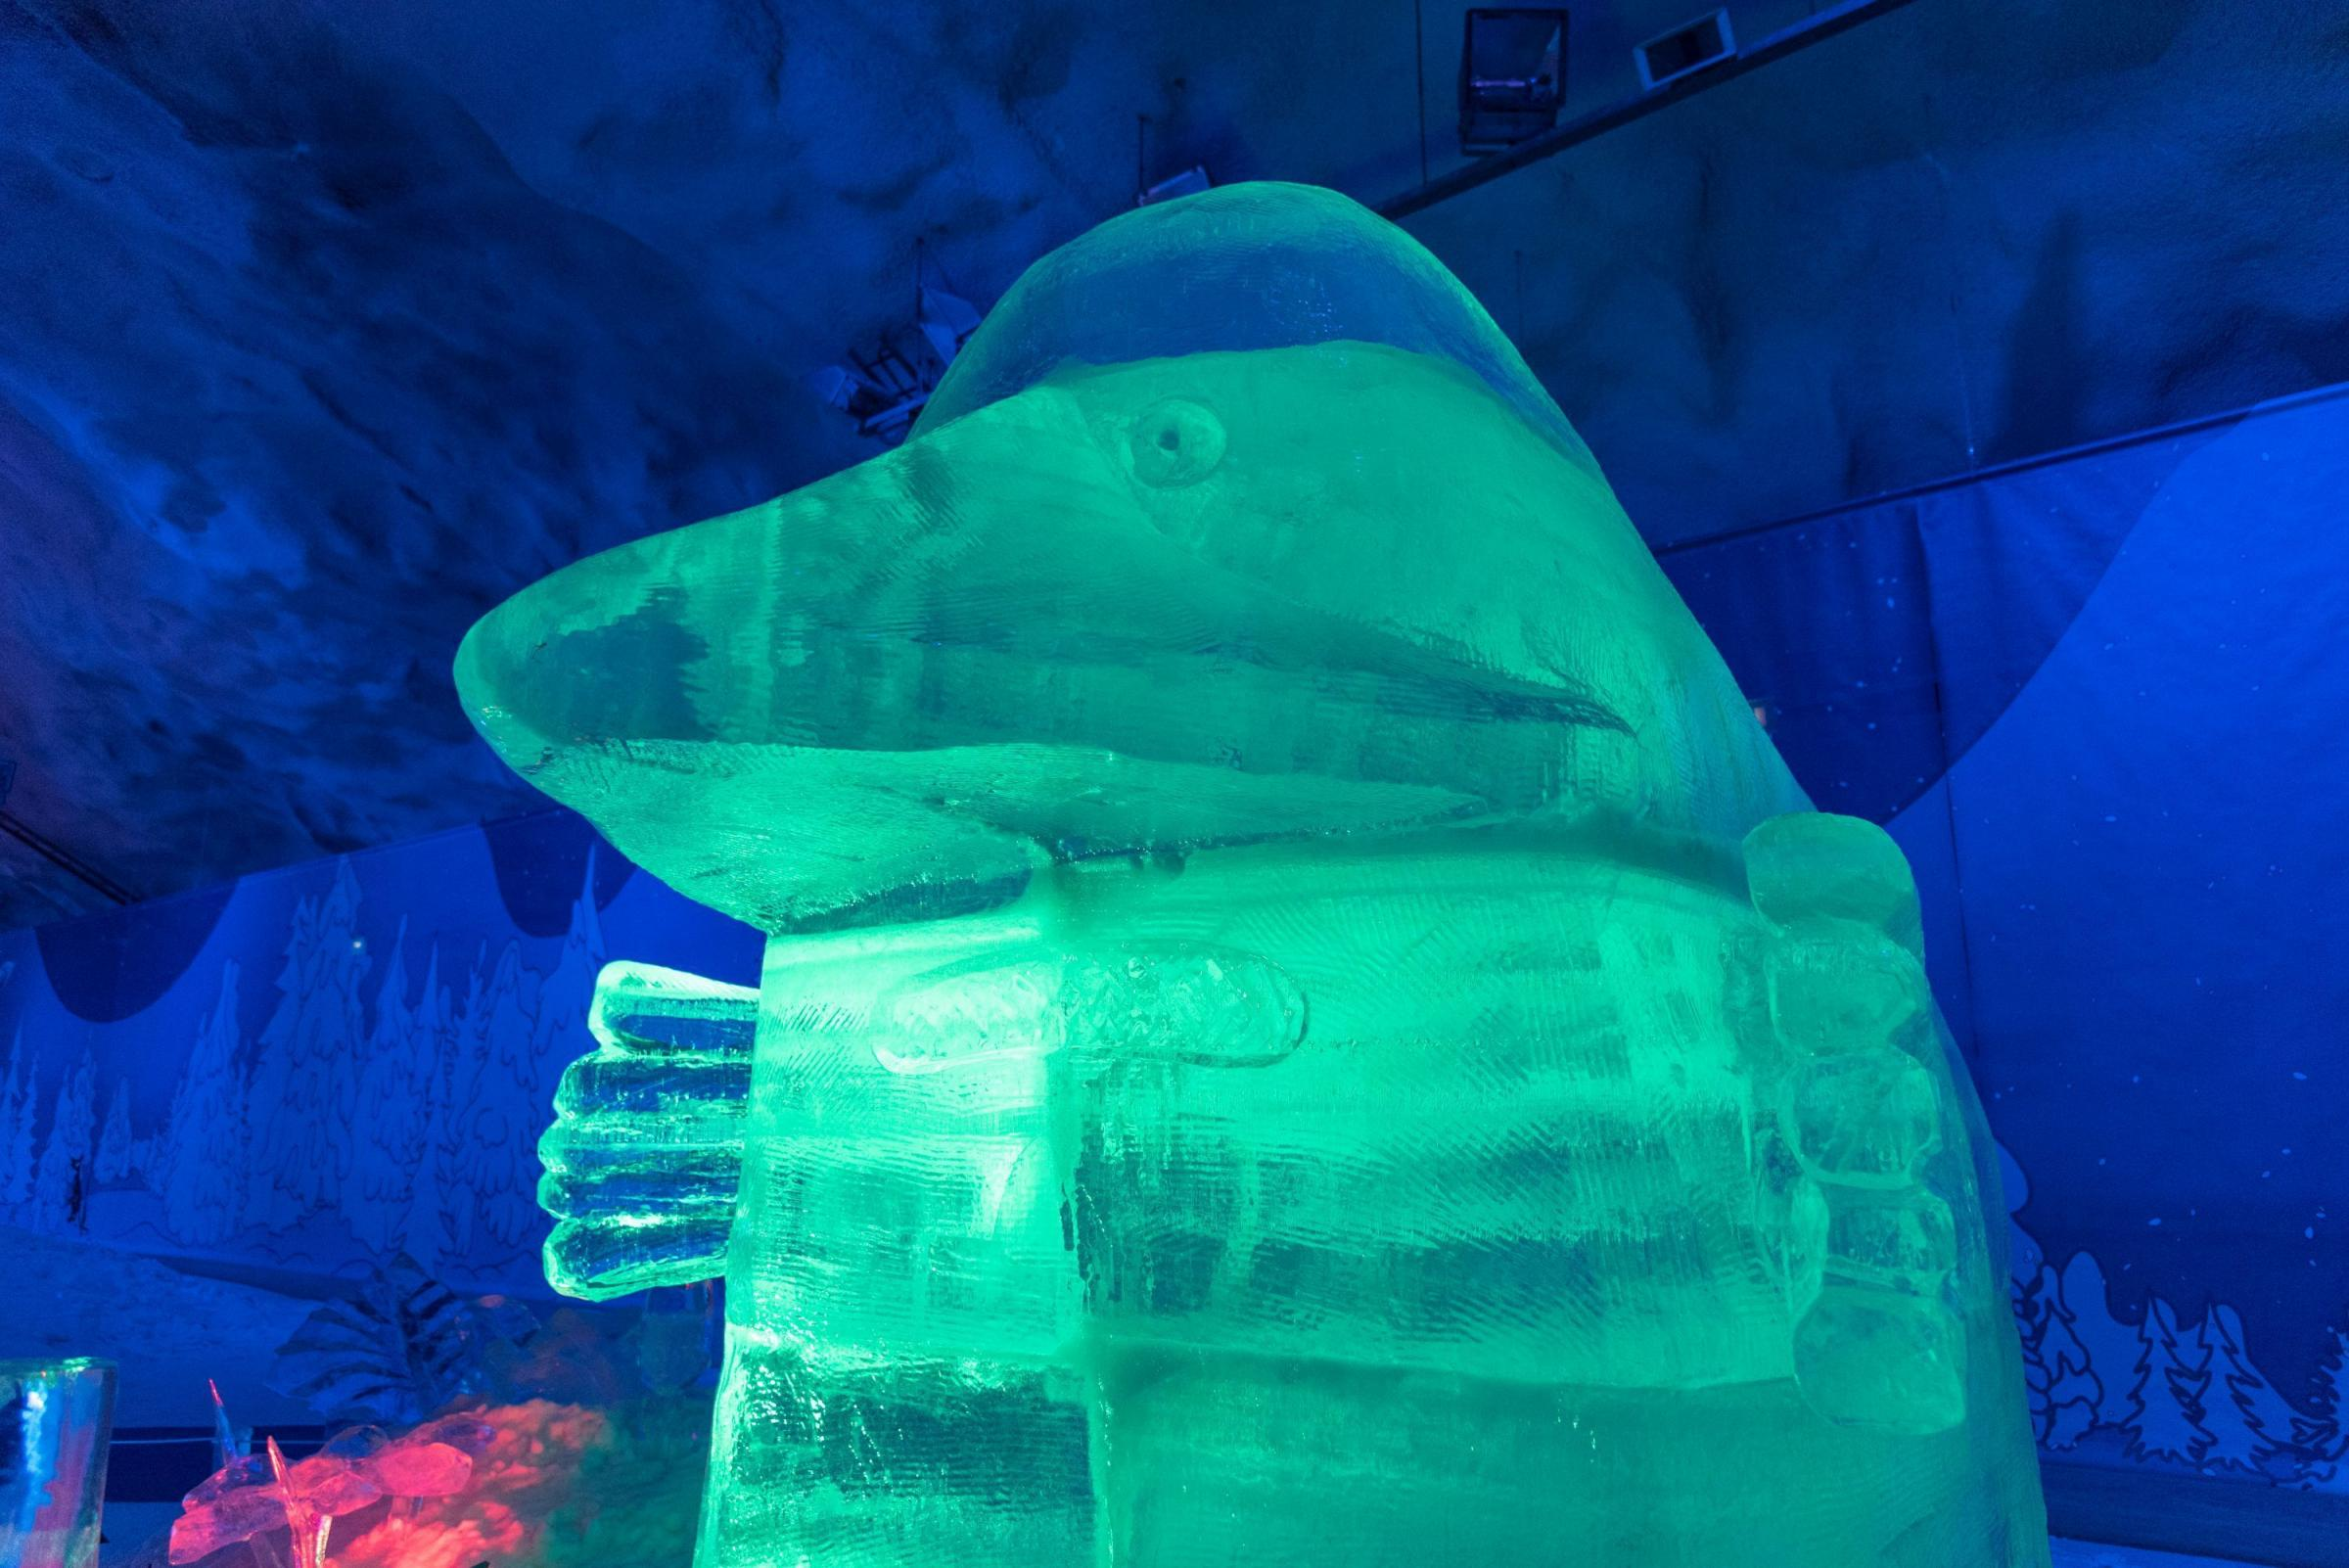 The Groke ice sculpture at the ice cave at the Vesileppis Resort in Finnish Lakeland